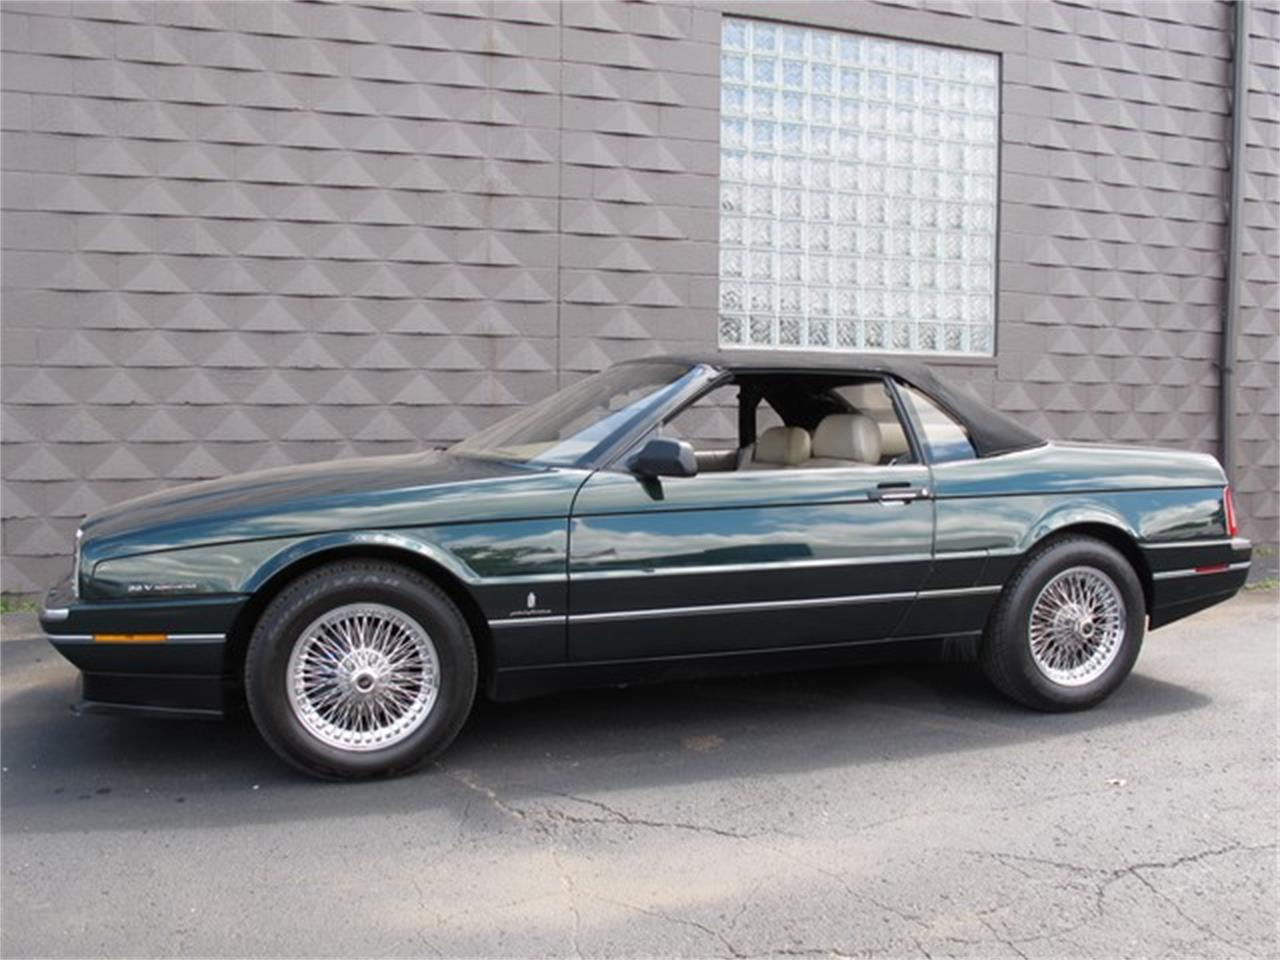 Large Picture of 1993 Cadillac Allante located in Troy Michigan - $14,900.00 Offered by Classic Auto Showplace - IQM6